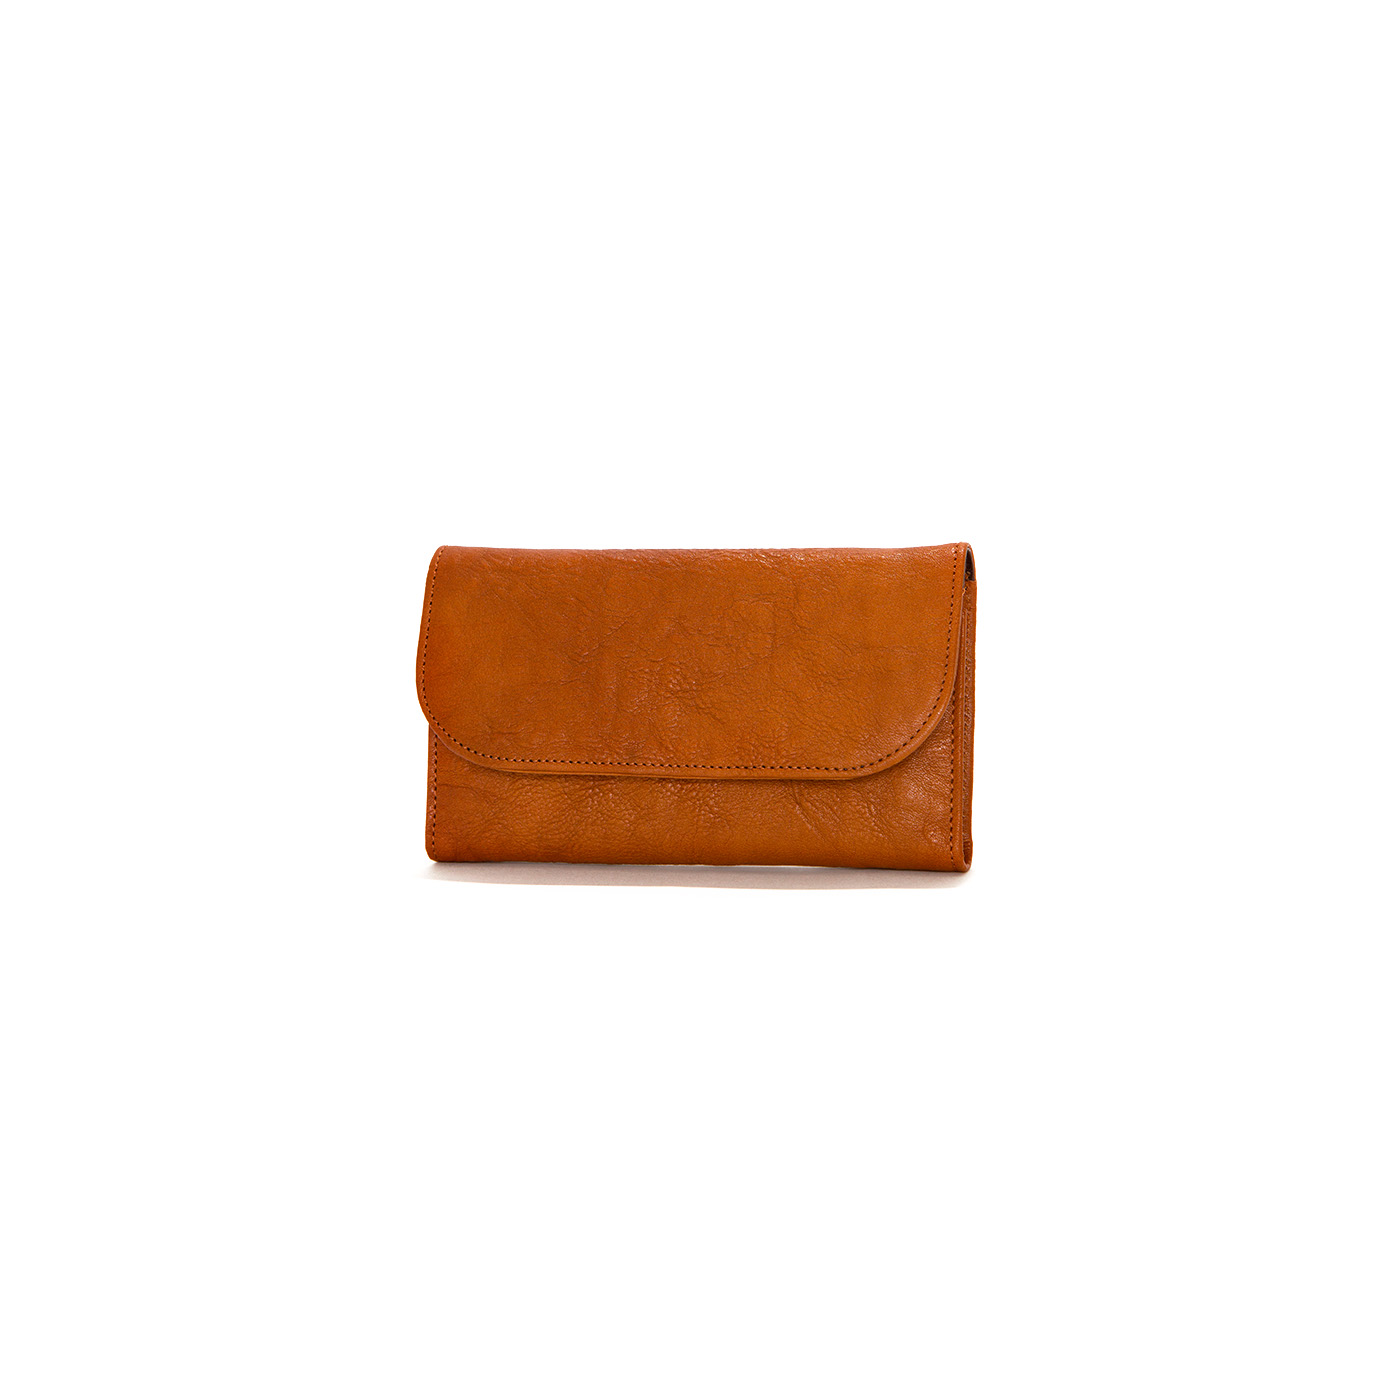 hobo CREASED LEATHER LONG WALLET